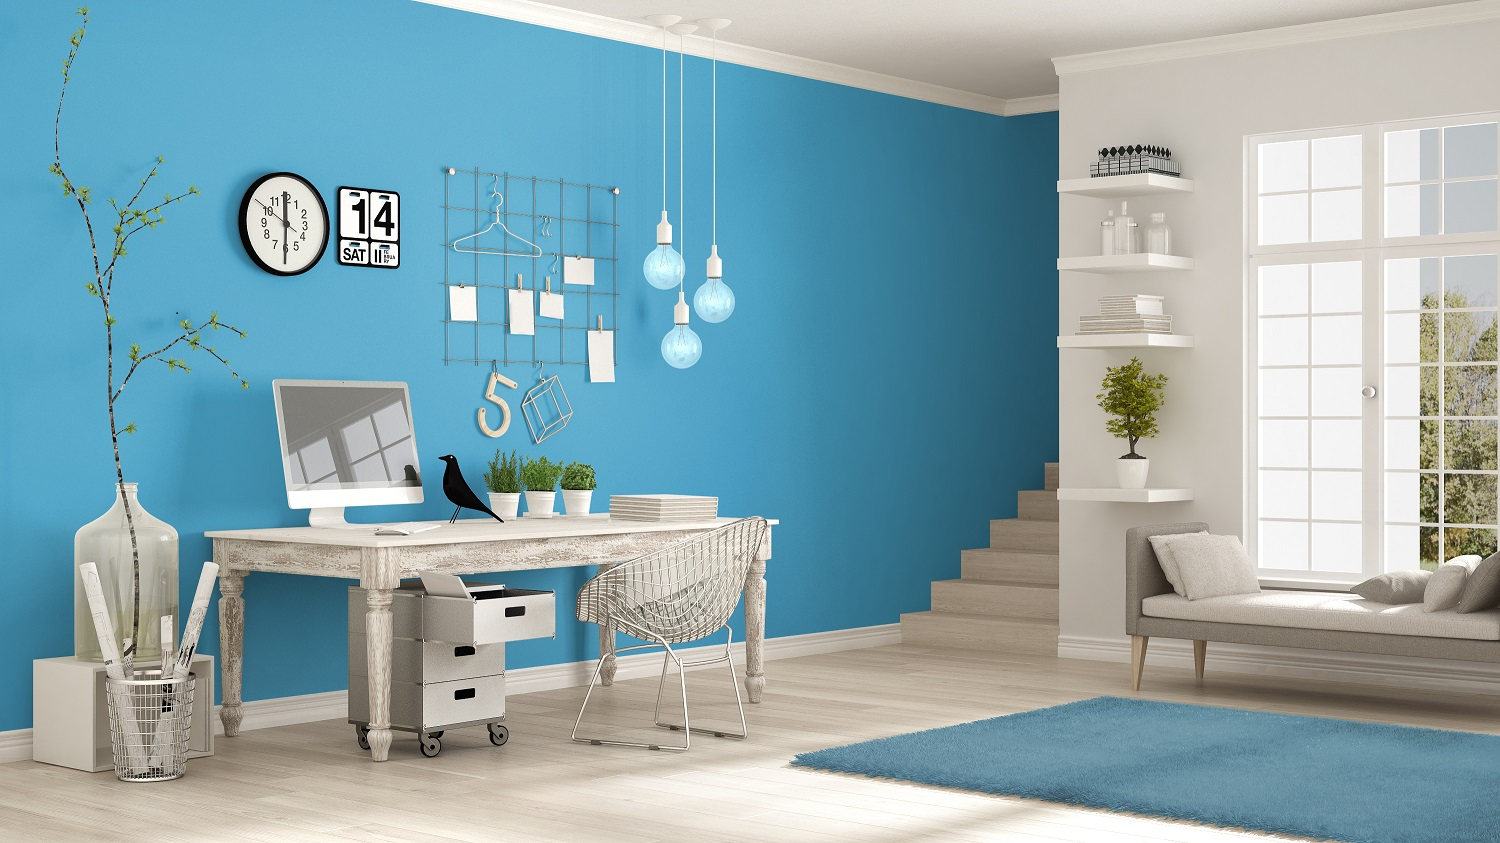 Chic Decorating Tips on a Tight Budget in Mint Hill Houses for Sale